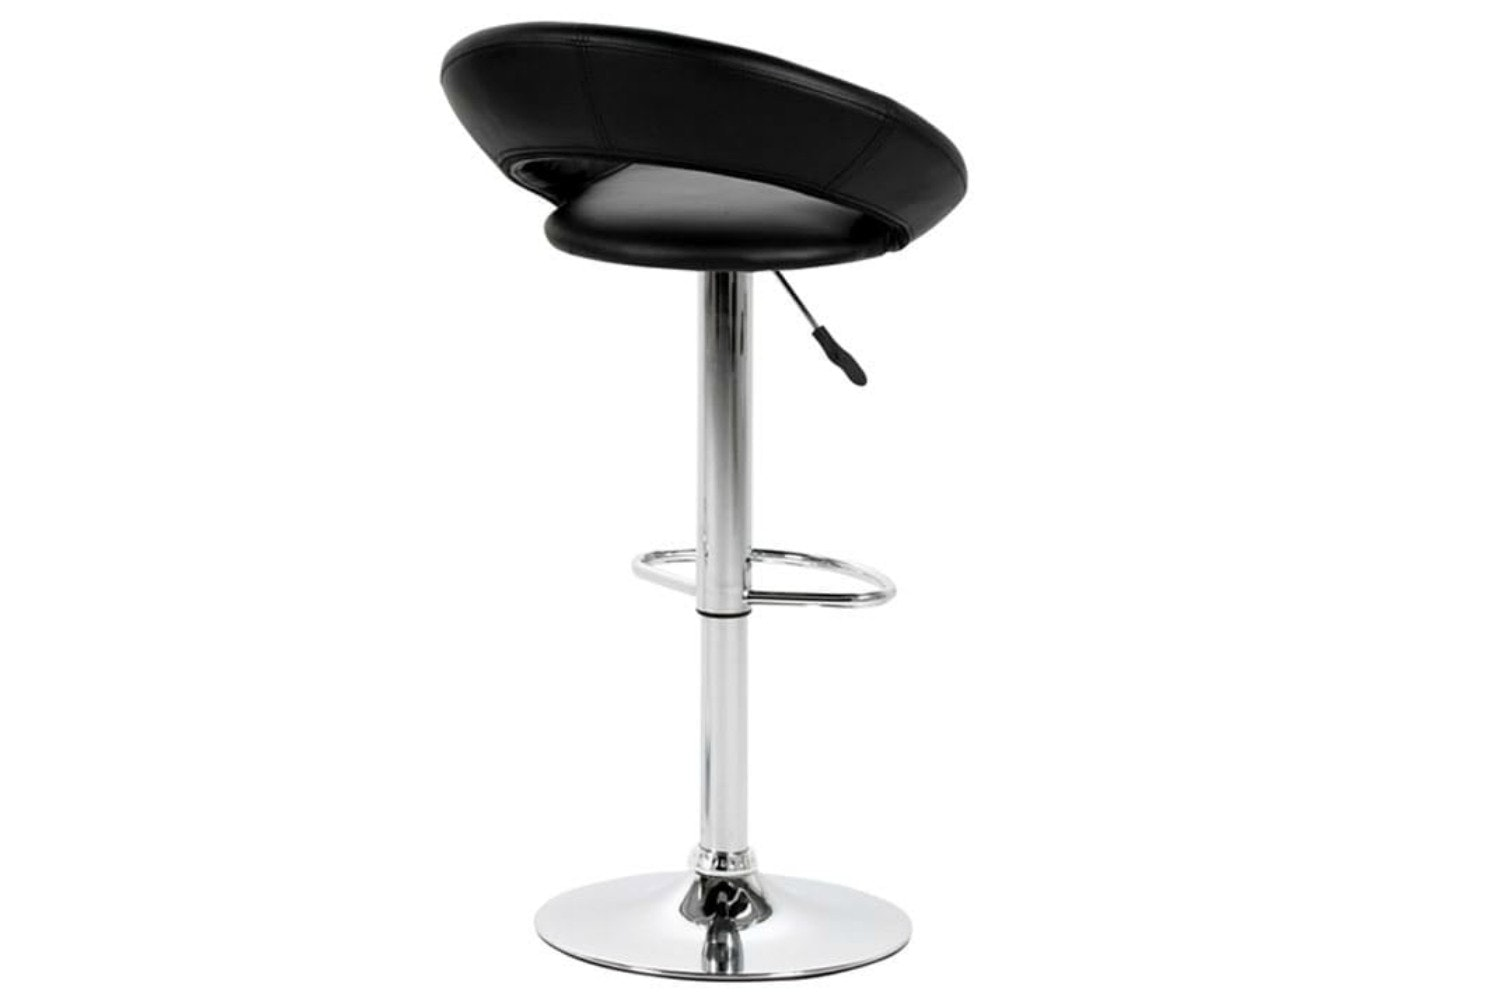 Plump Bar Stool | Black